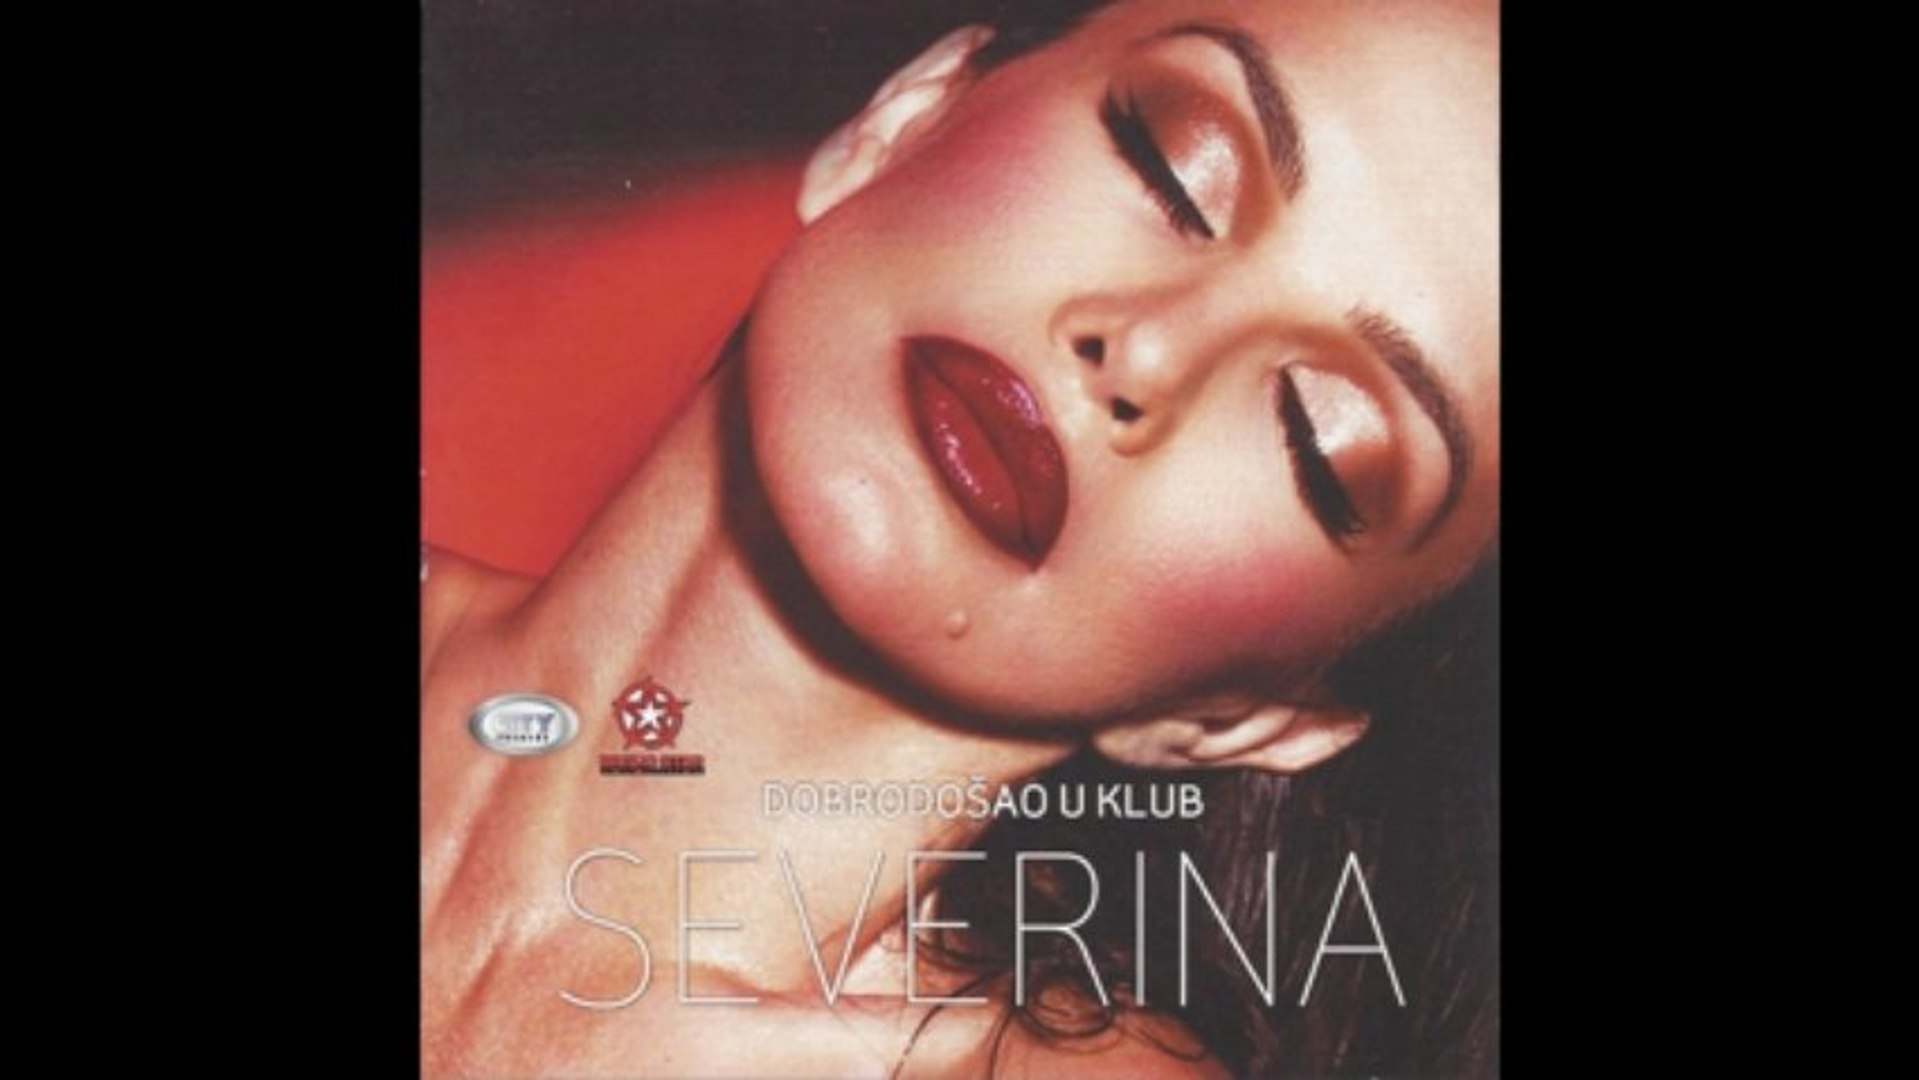 Severina - Slaba na slabica - (Audio 2012) HD